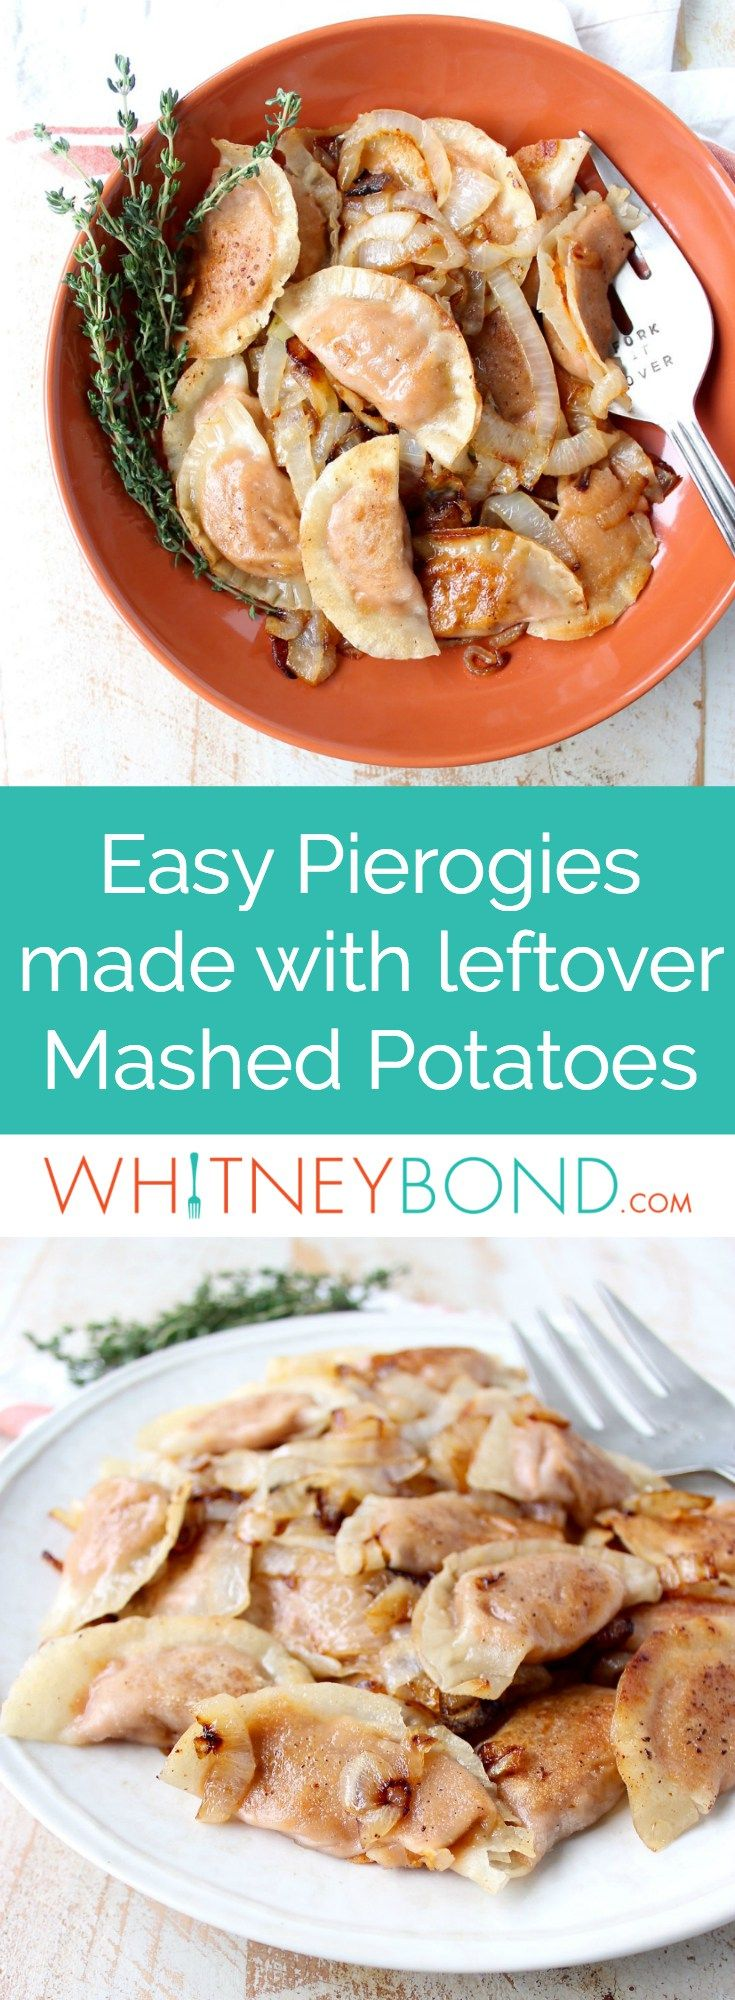 In this easy pierogies recipe, wonton wrappers are filled with leftover mashed potatoes, then pan seared with caramelized onions for a delicious meal!